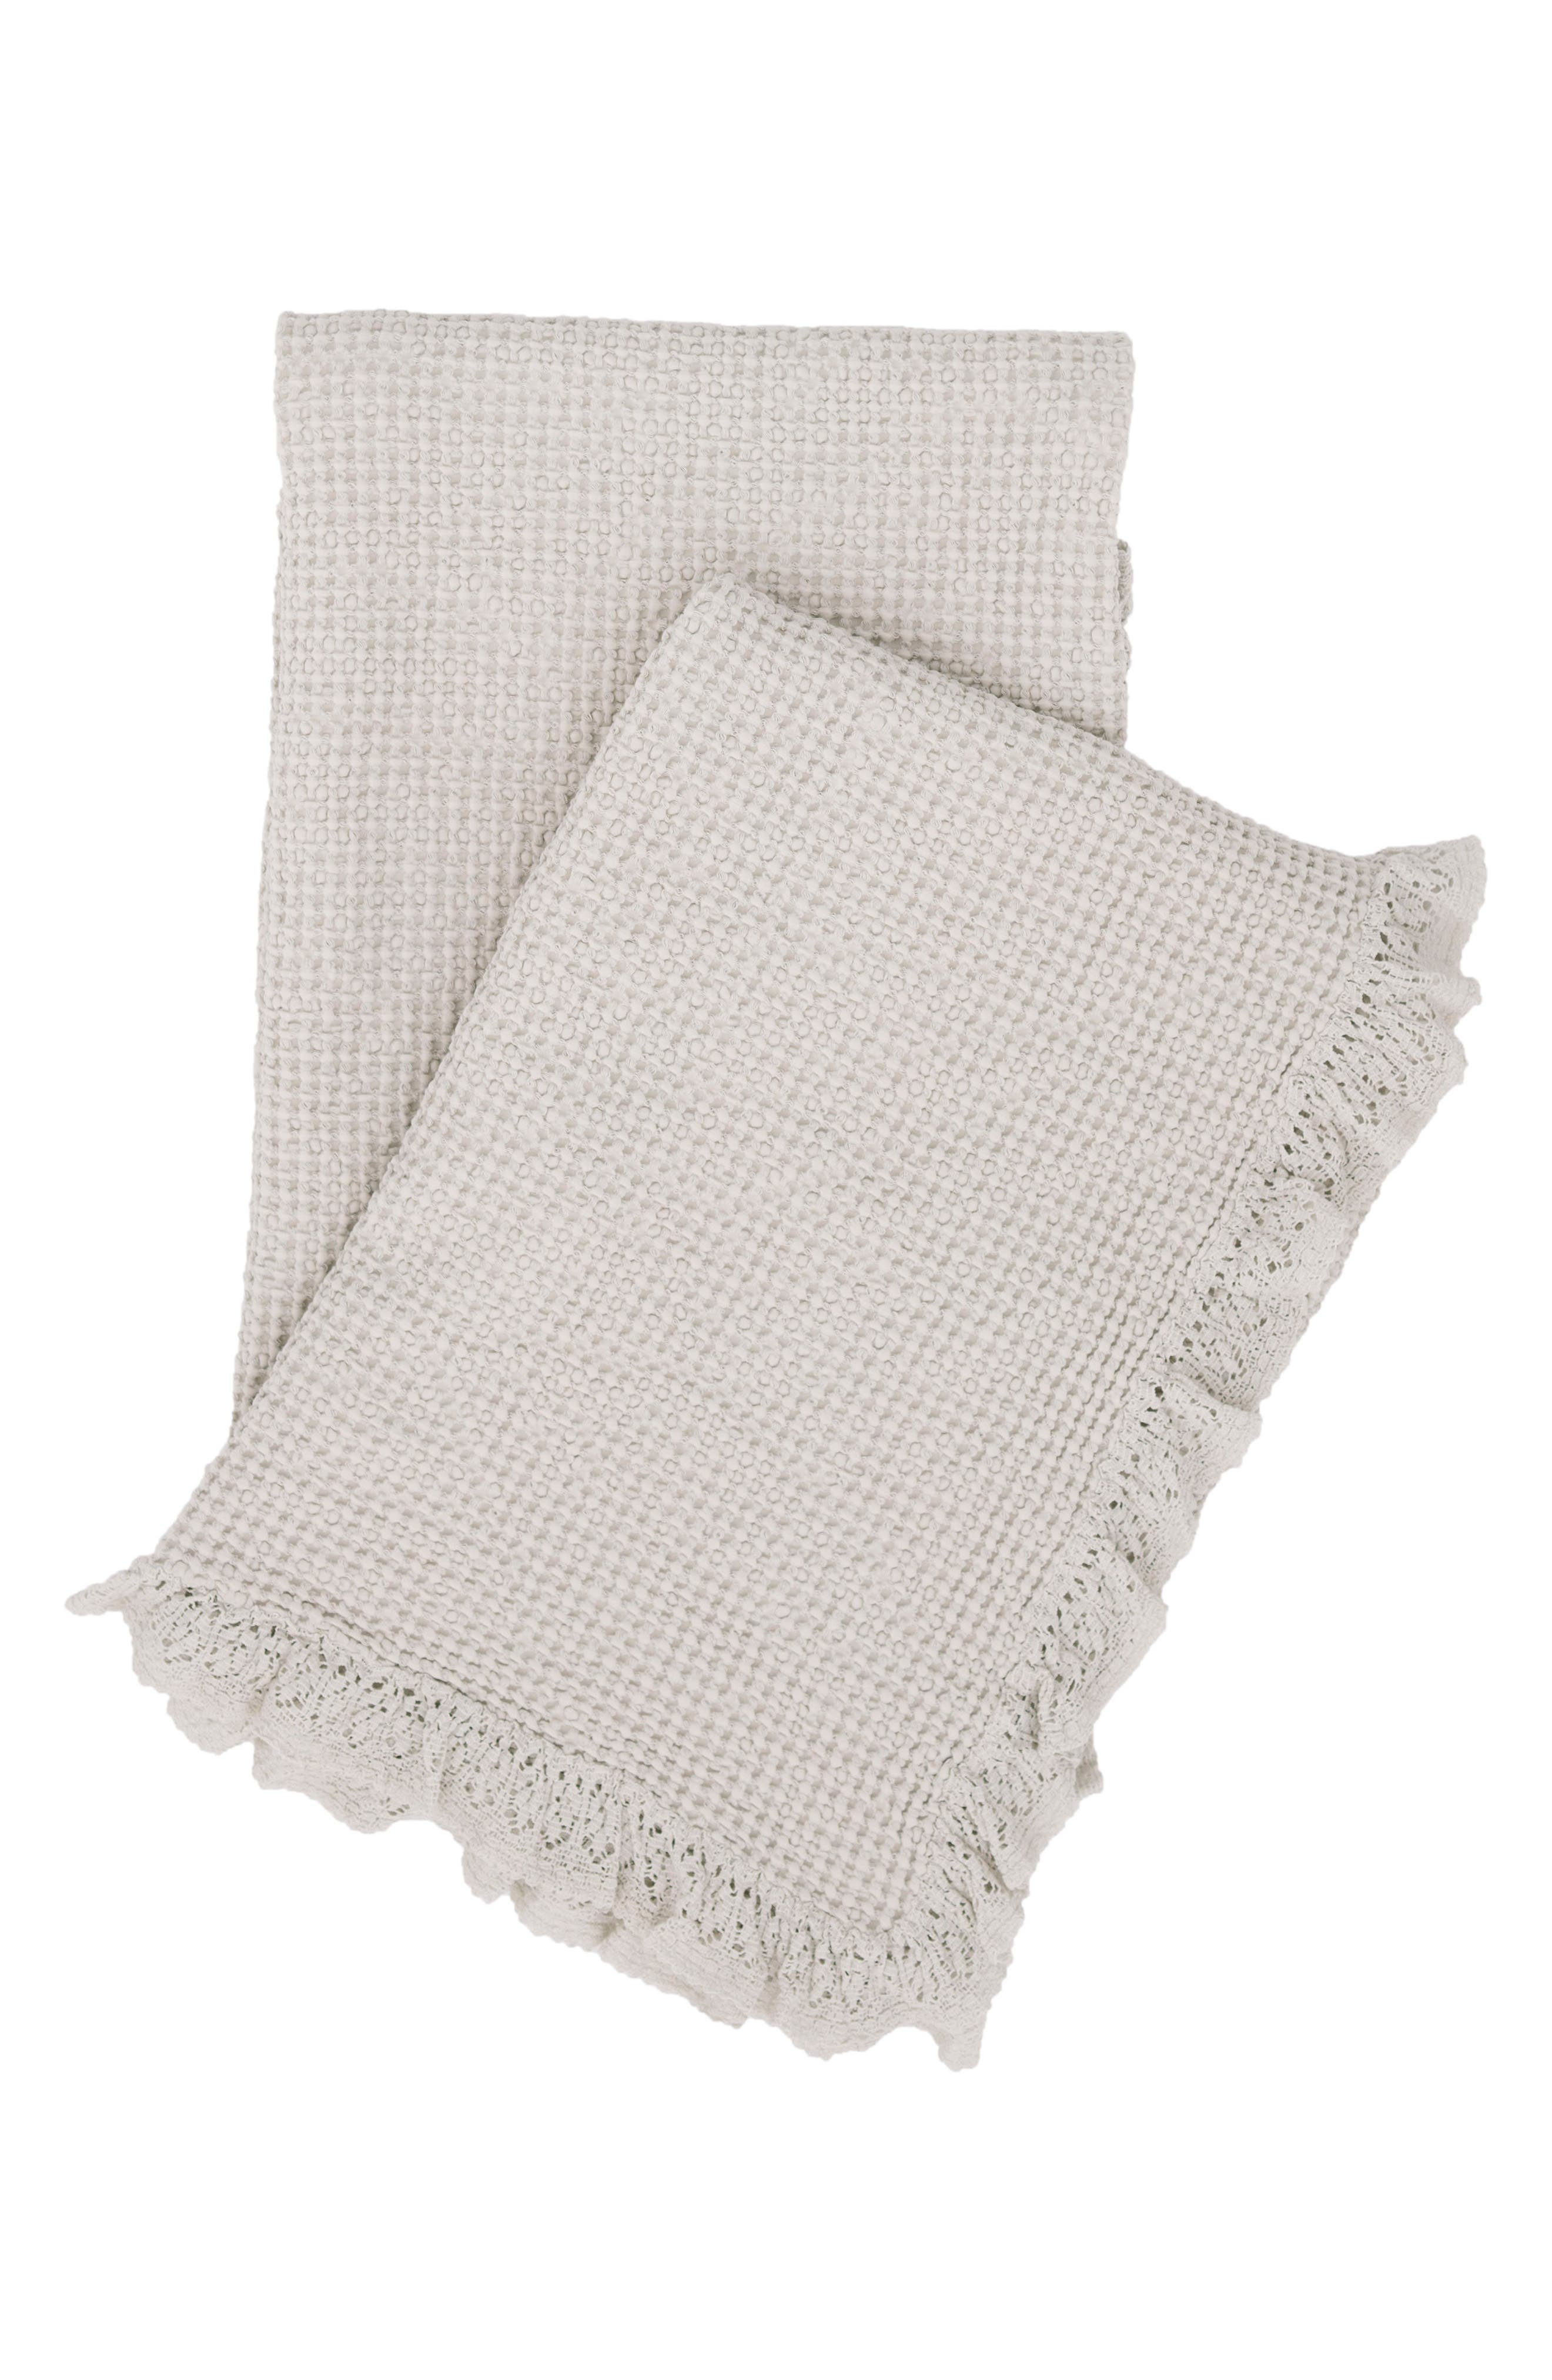 Alternate Image 1 Selected - Pine Cone Hill Lace Ruffle Throw